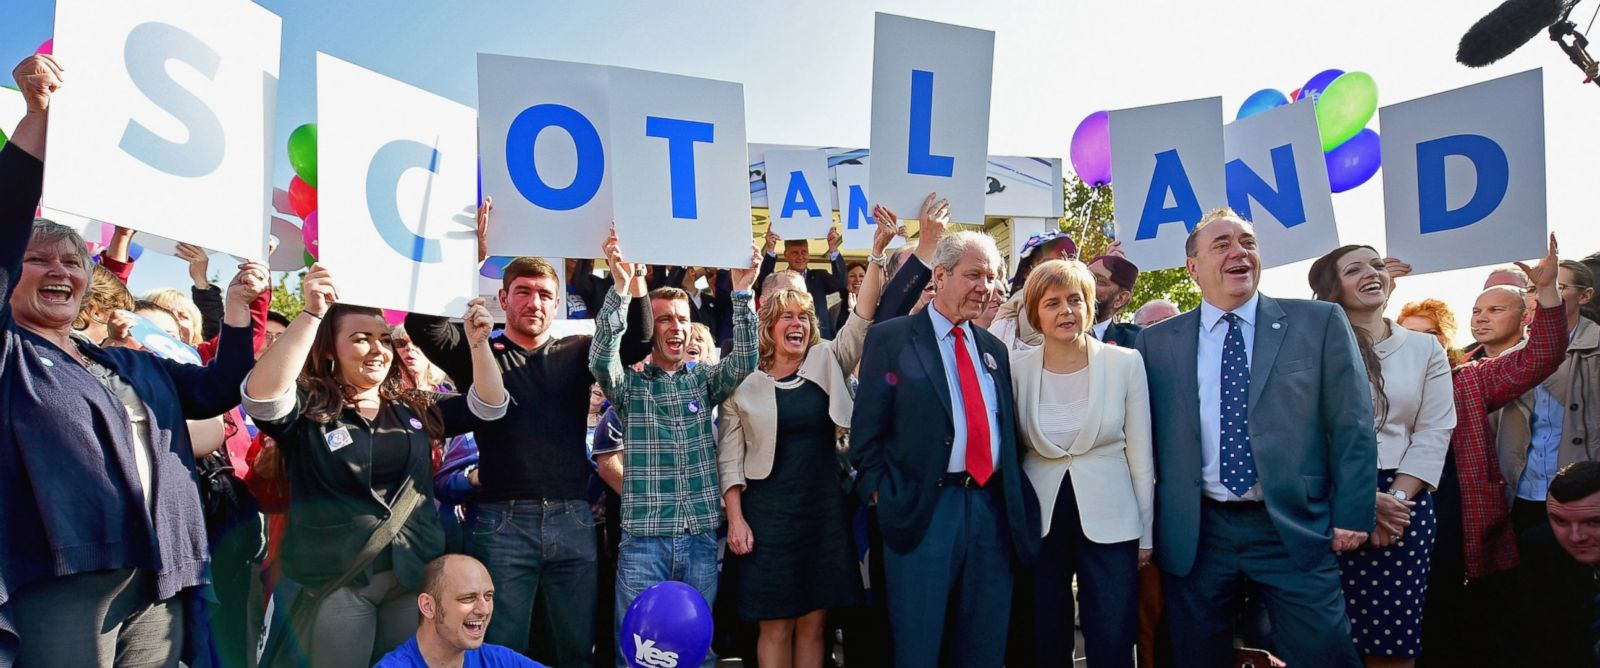 PHOTO: First Minister Alex Salmond, right, Deputy First Minister Nicola Sturgeon, center, and former deputy leader of the SNP Jim Sillars, left, campaign with Yes activists on Sept. 10, 2014 in Edinburgh, Scotland.